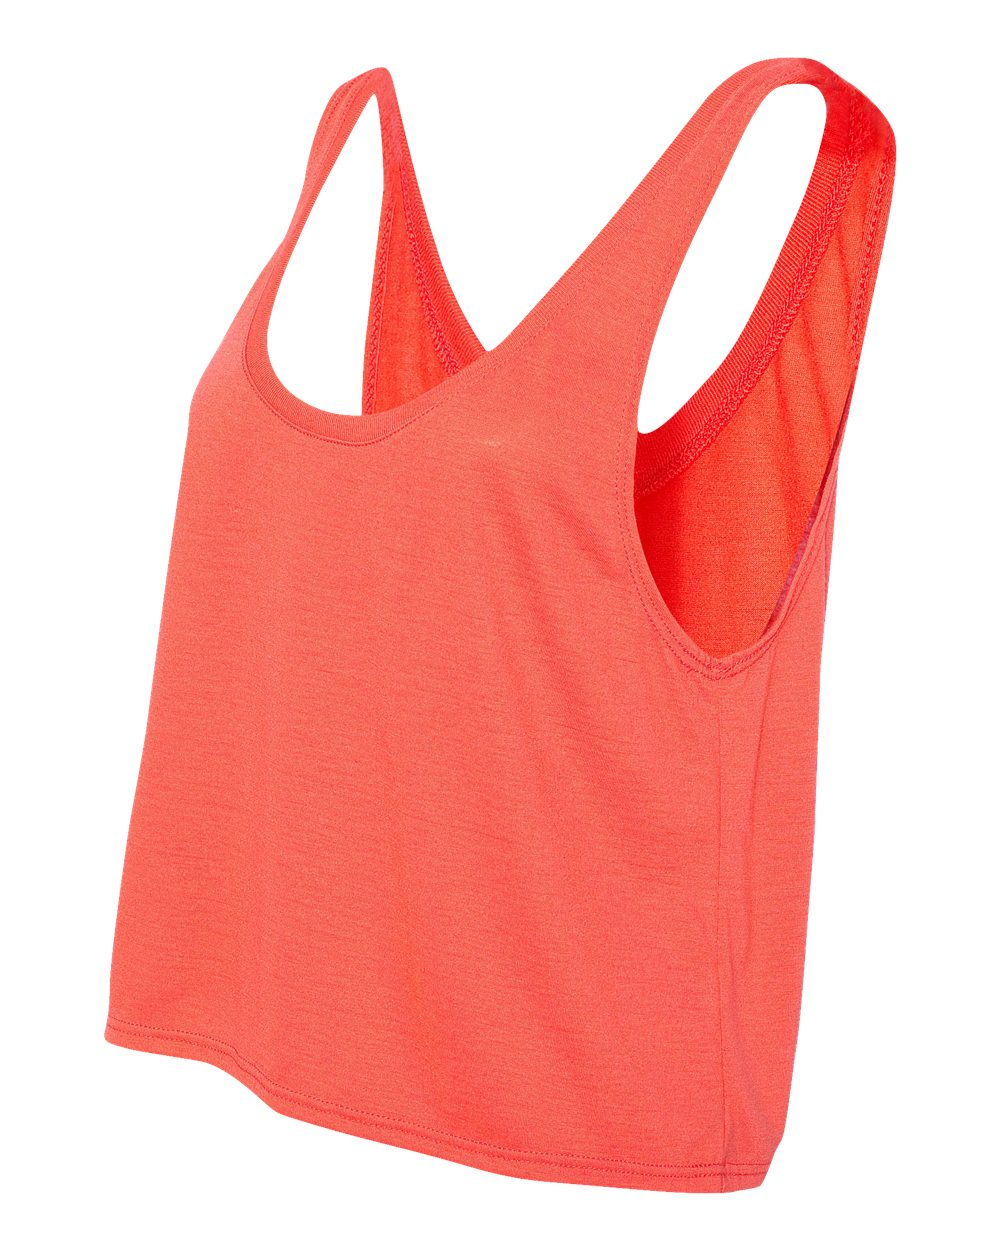 Bella-Canvas-Women-039-s-Flowy-Boxy-Tank-8880-S-XL thumbnail 15